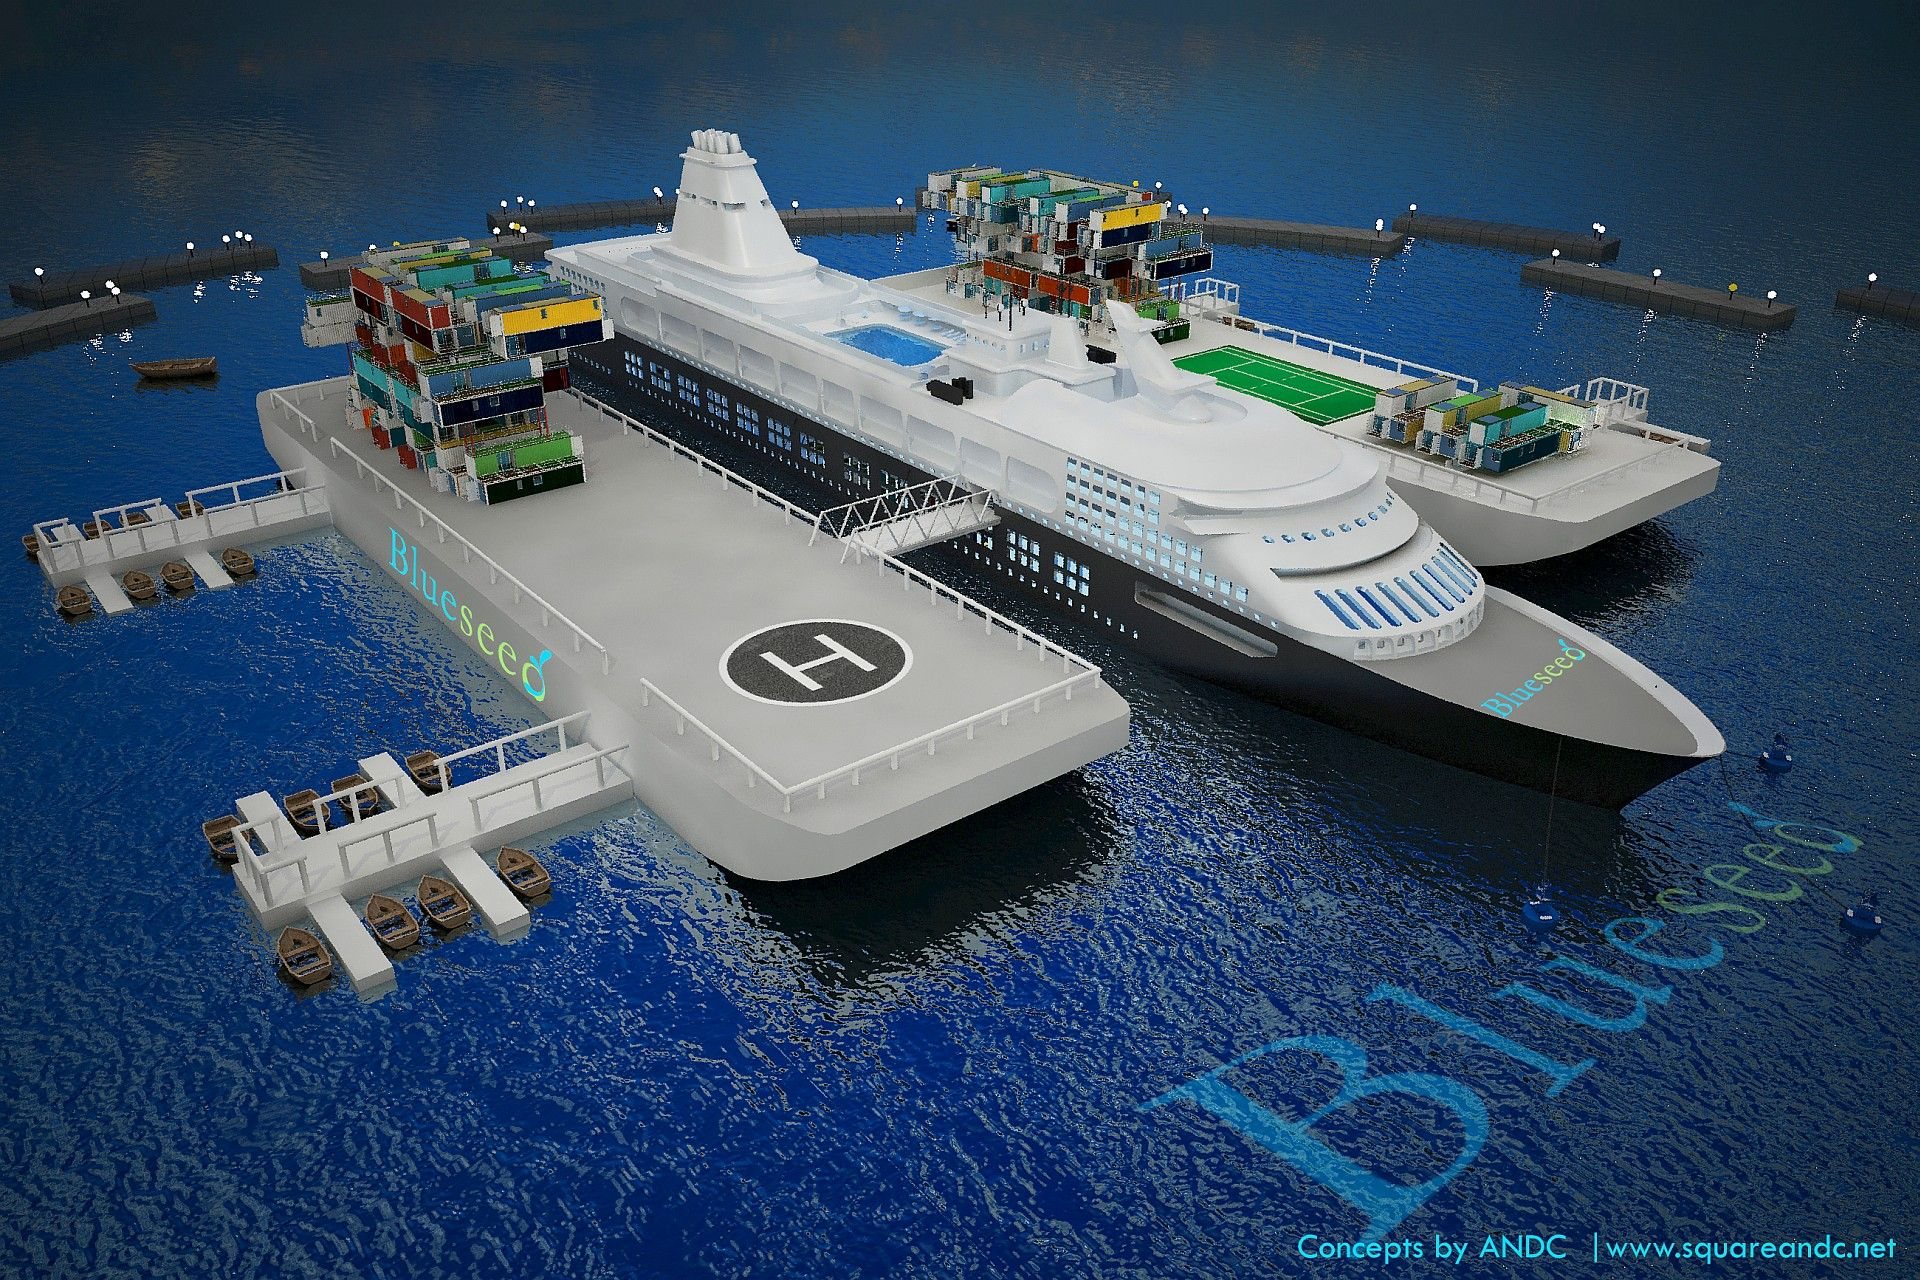 Ship | Blueseed – the startup community on a ship